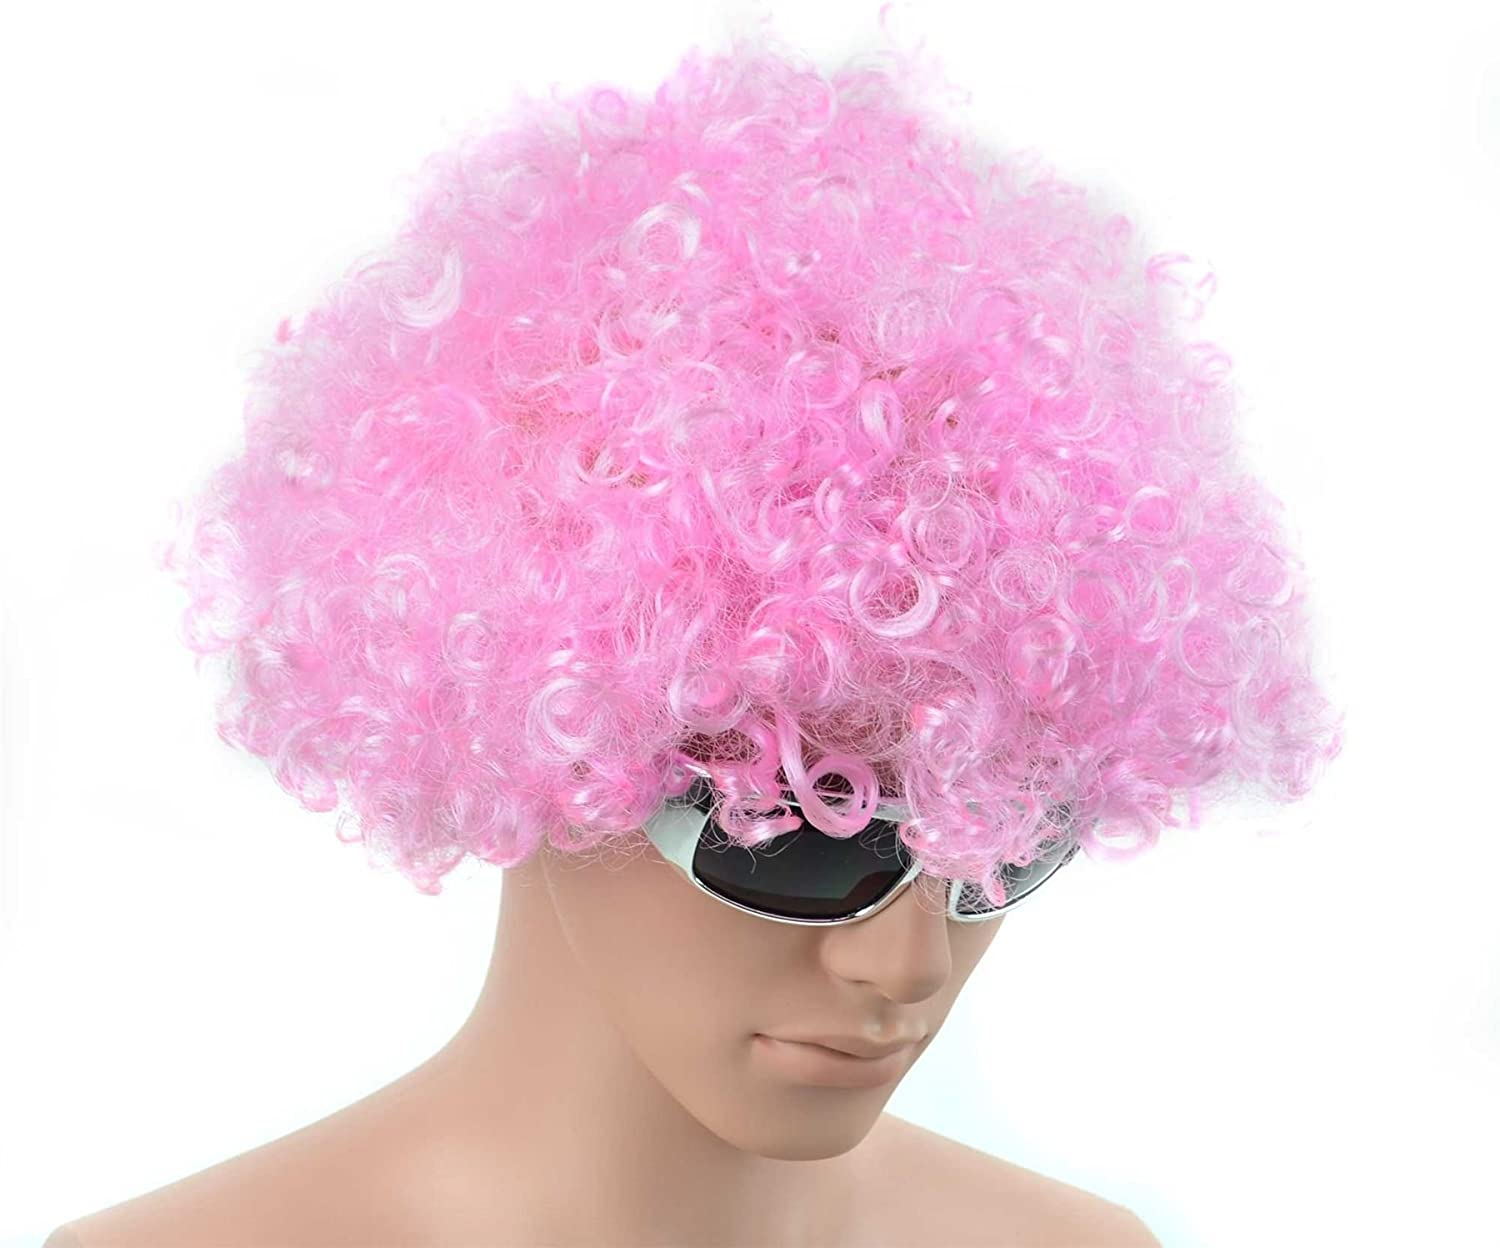 Pink Curly 70s Afro Wig Fancy Dress Party Costume Accessory Disco Clown Unisex